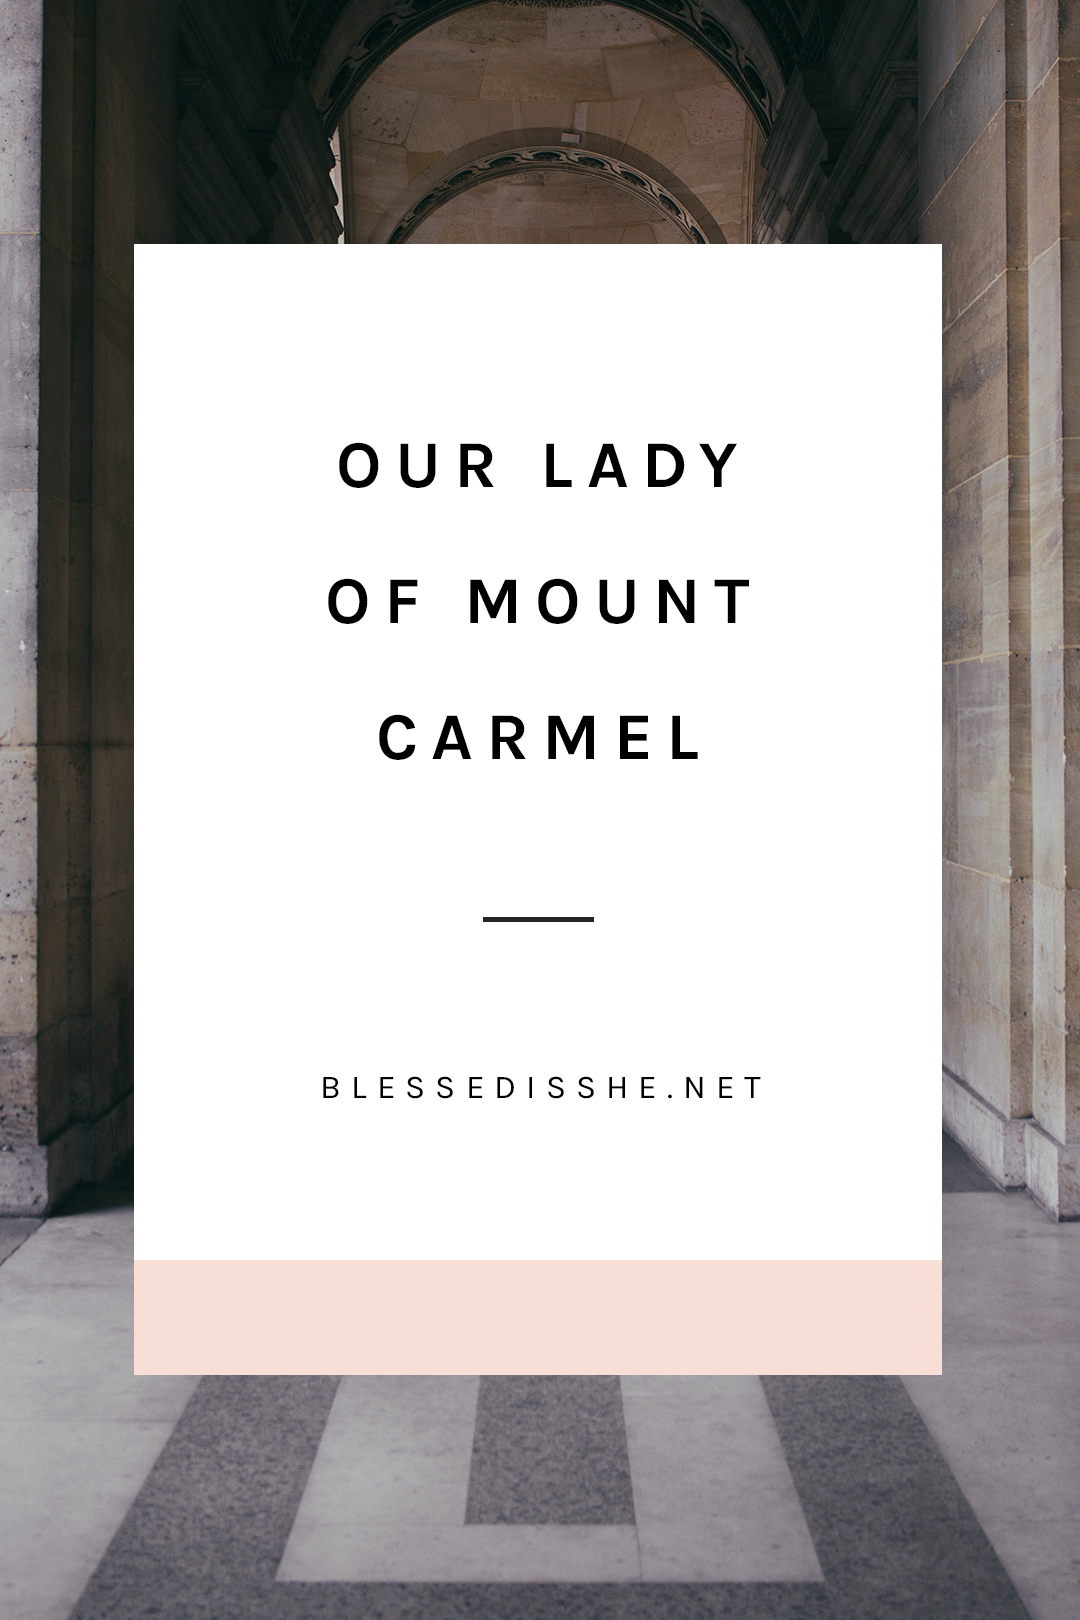 mount carmel pilgrimage sites to visit